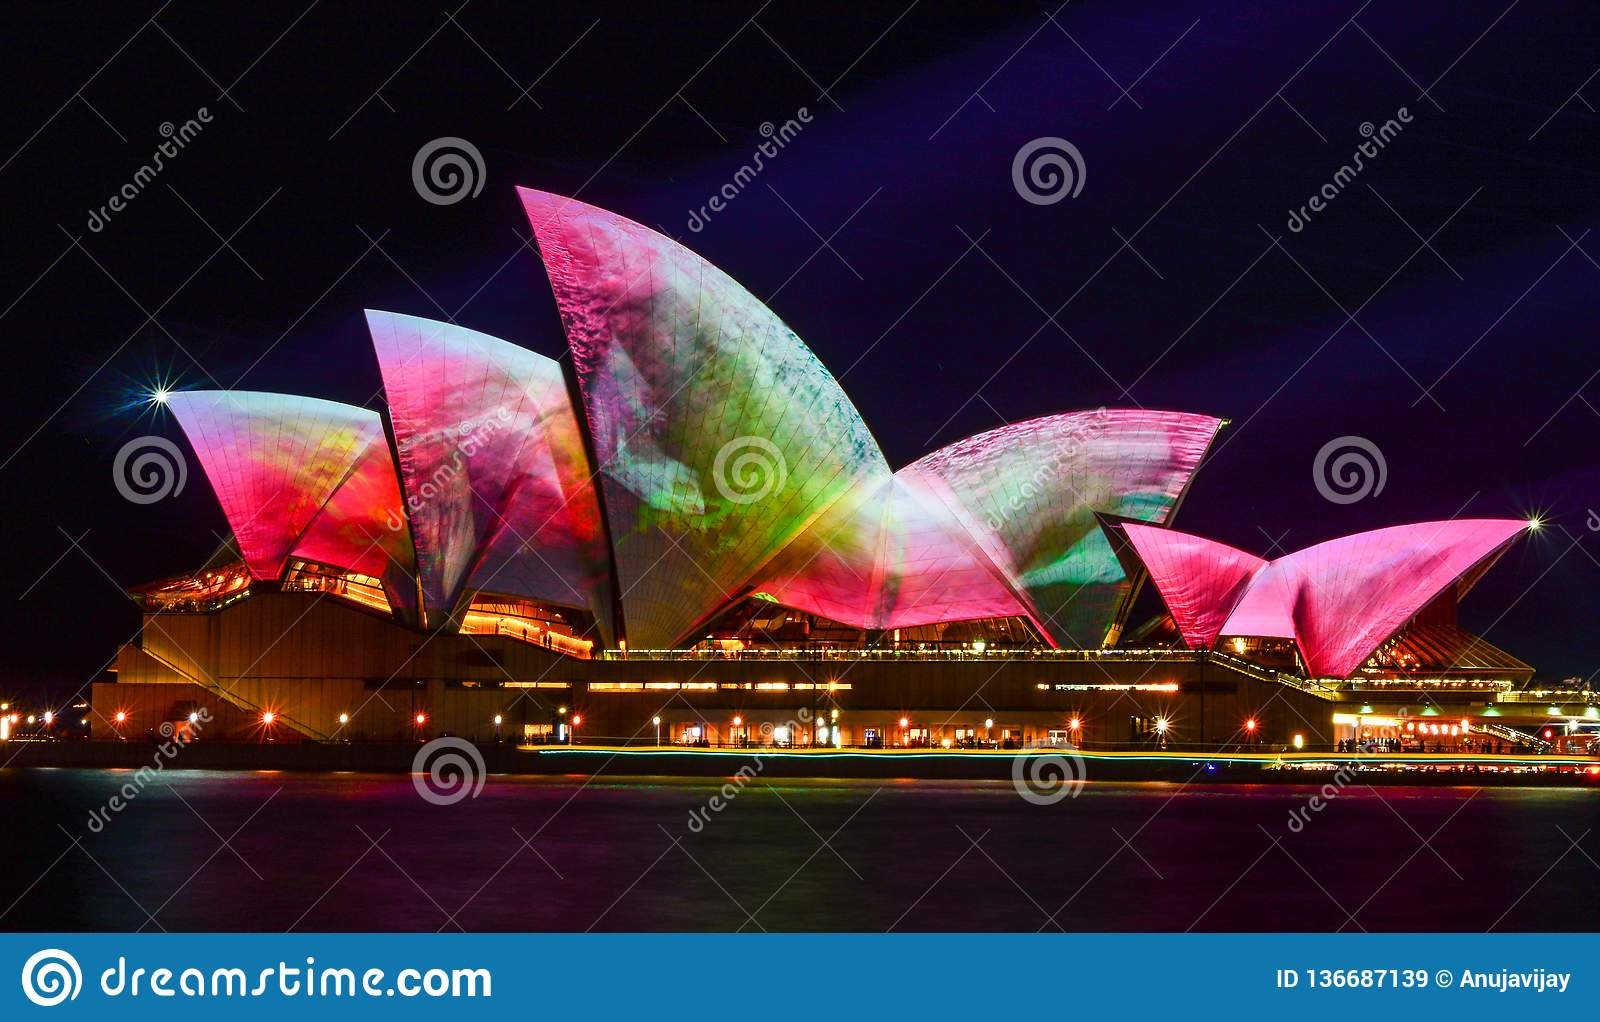 Vivid Sydney, Sydney Opera House with colourful images